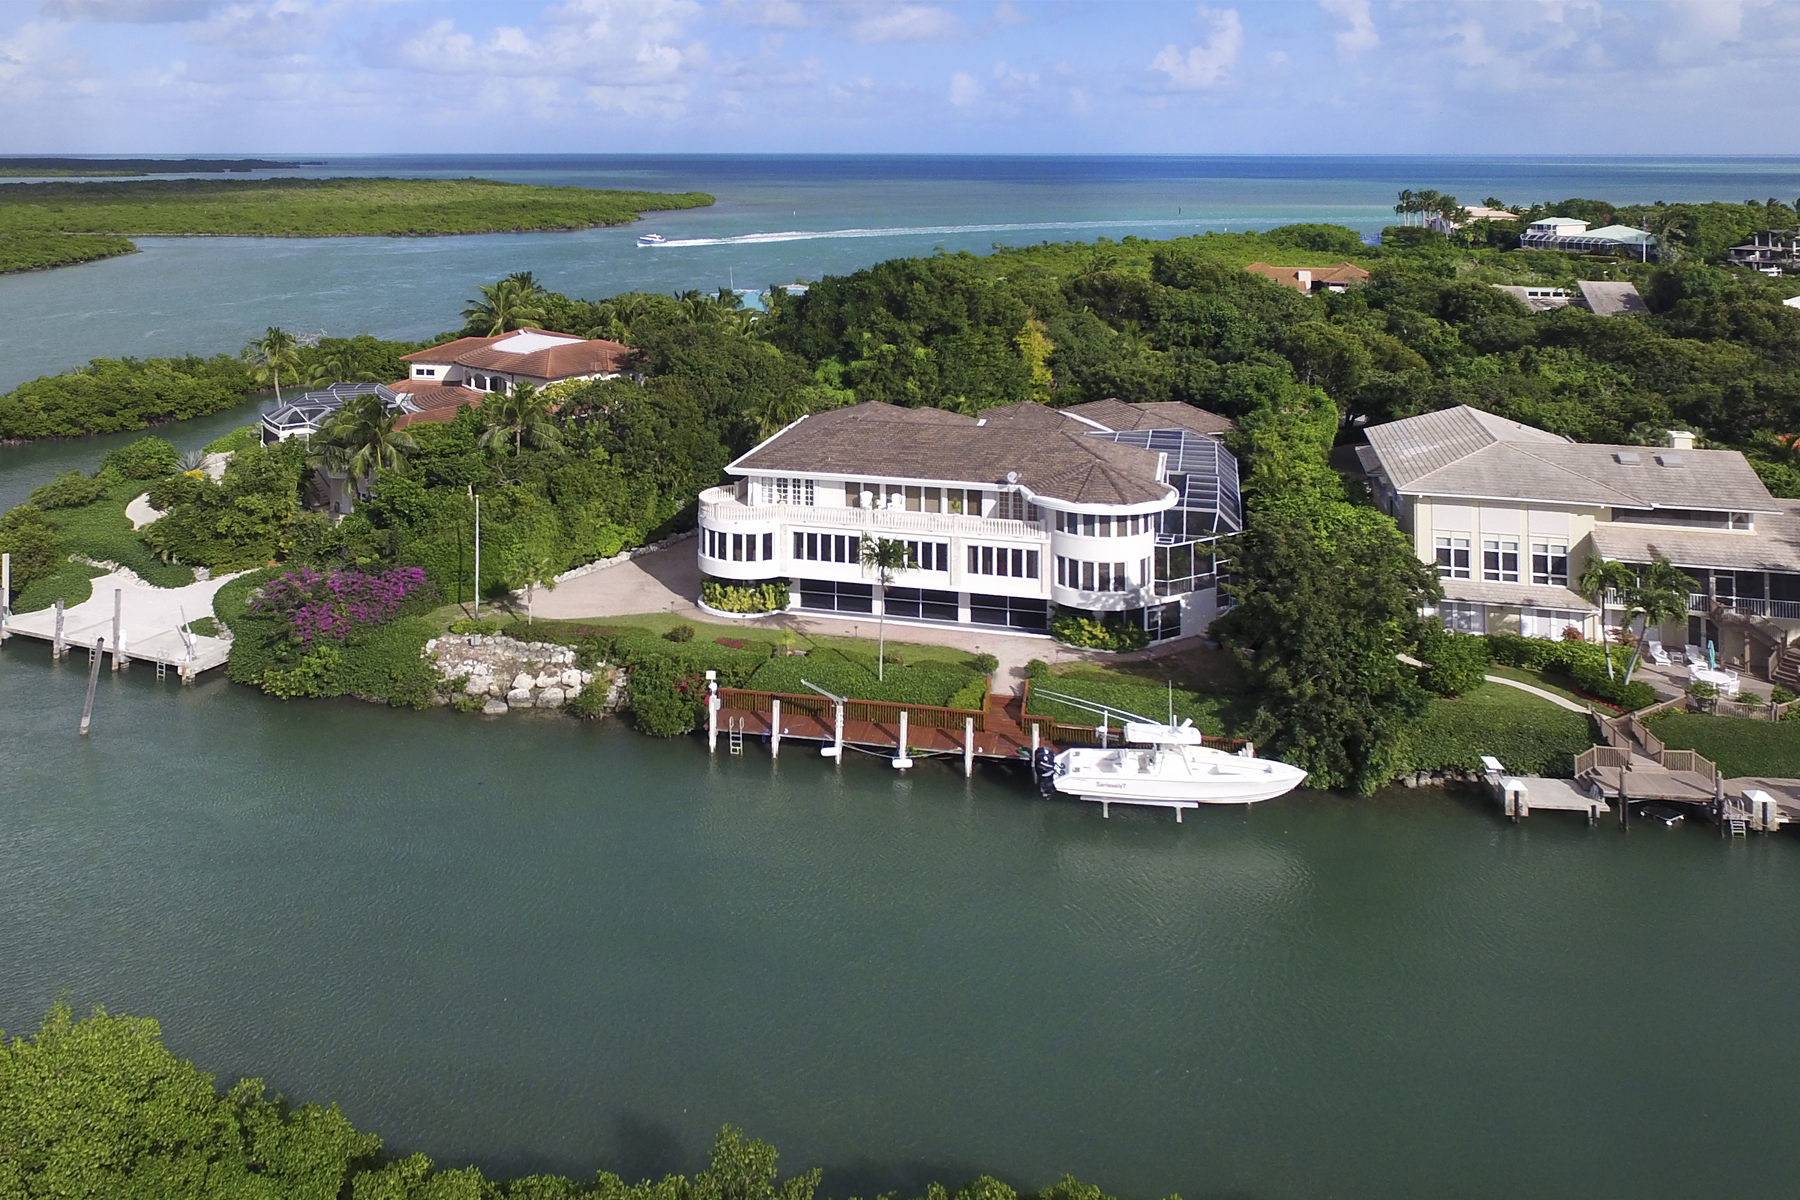 Single Family Home for Sale at Exceptional Family Compound at Ocean Reef 34 Cardinal Lane, Ocean Reef Community, Key Largo, Florida, 33037 United States